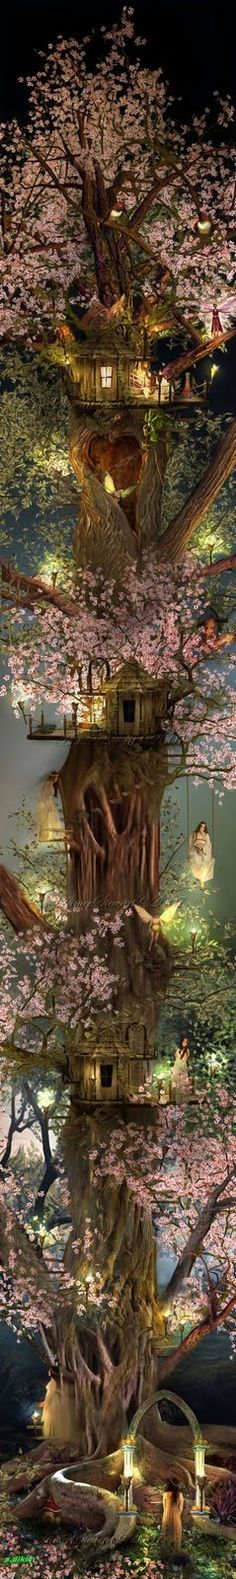 Fairy tree - where I want to live